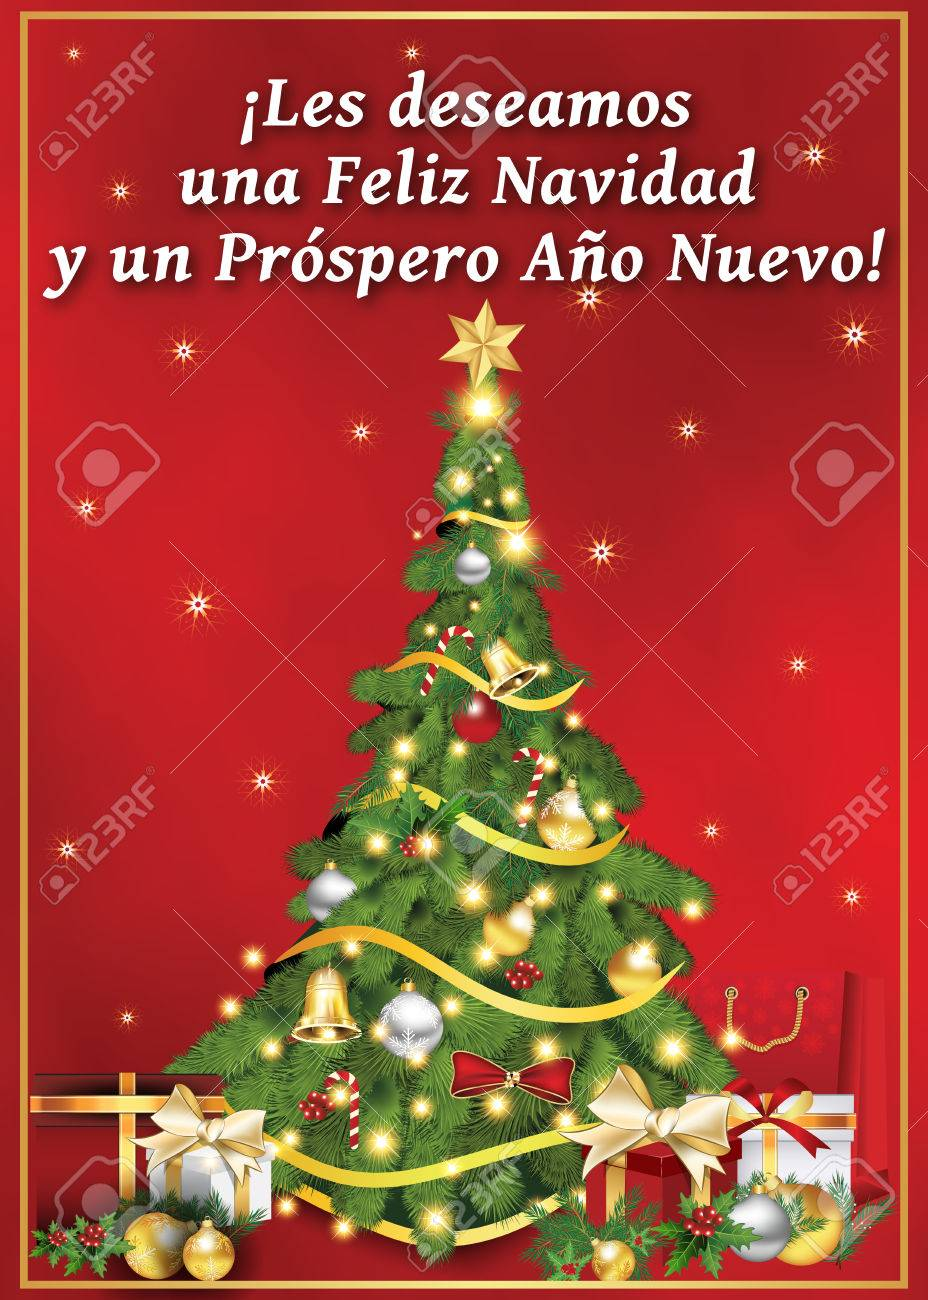 spanish seasons greetings christmas new year card les deseamos feliz navidad y un